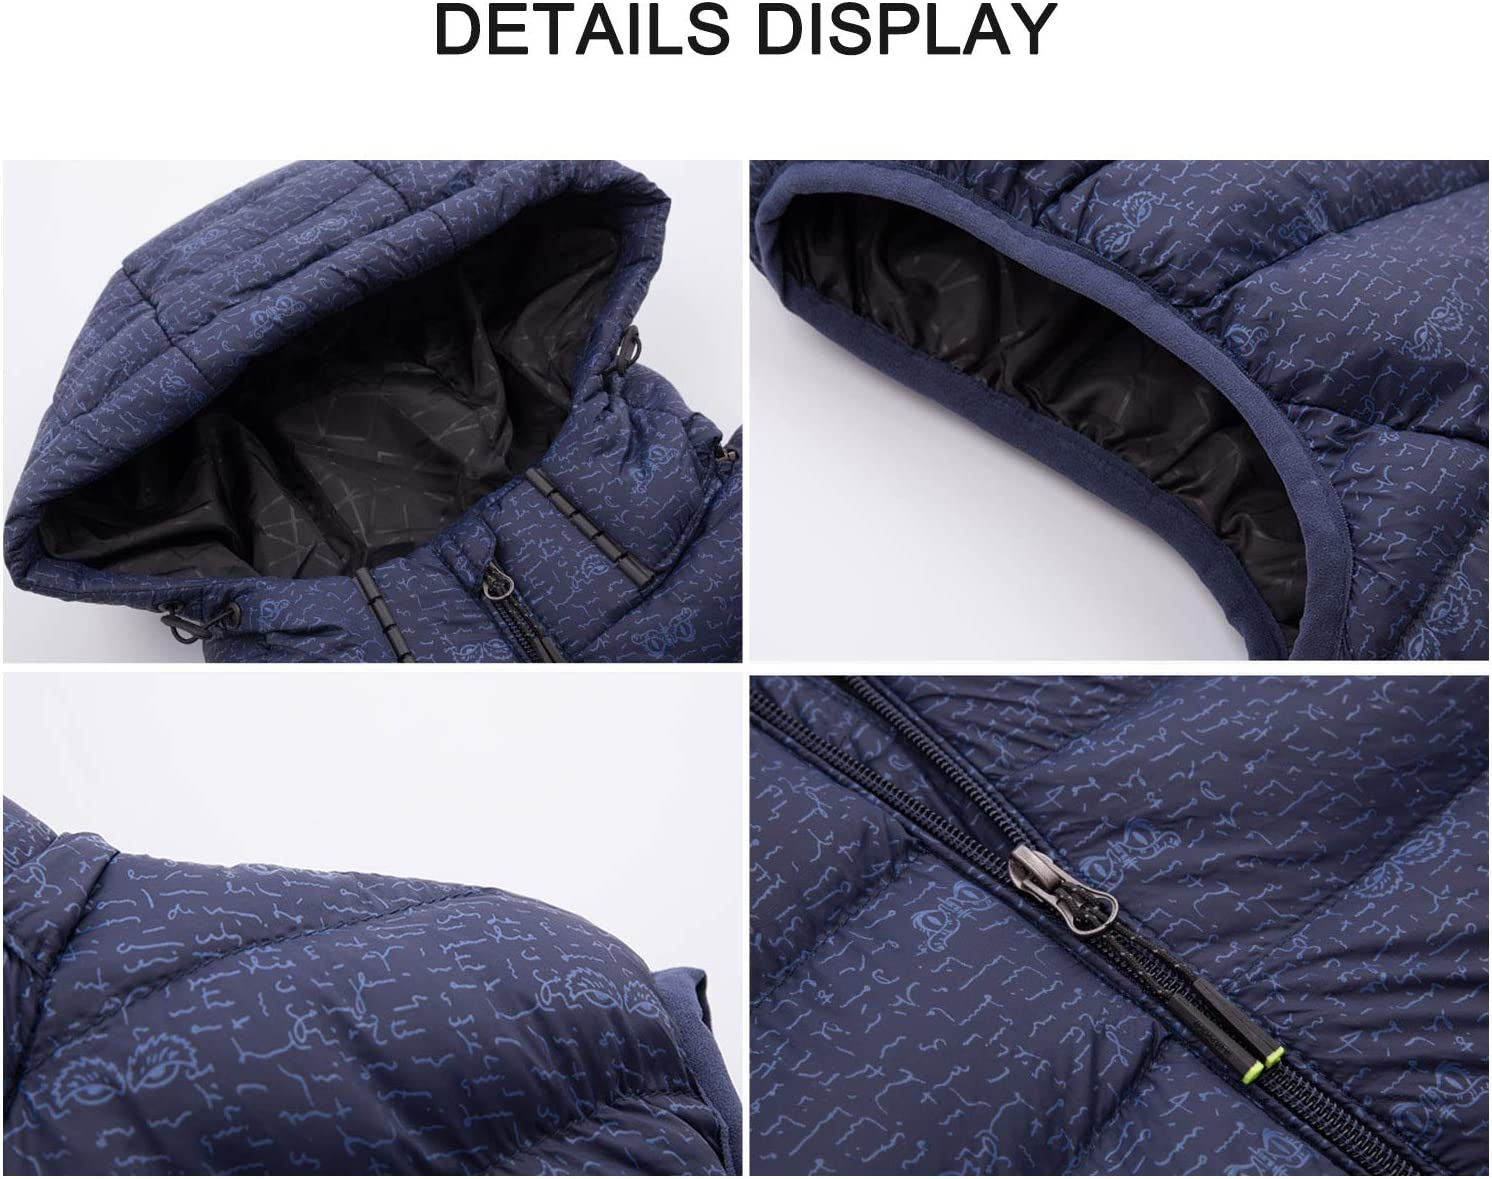 Decdeal USB Heated Warm Security Intelligent Autumn and Winter Vest with Hat Men Motorcycle Outdoor Ski Jacket Blue